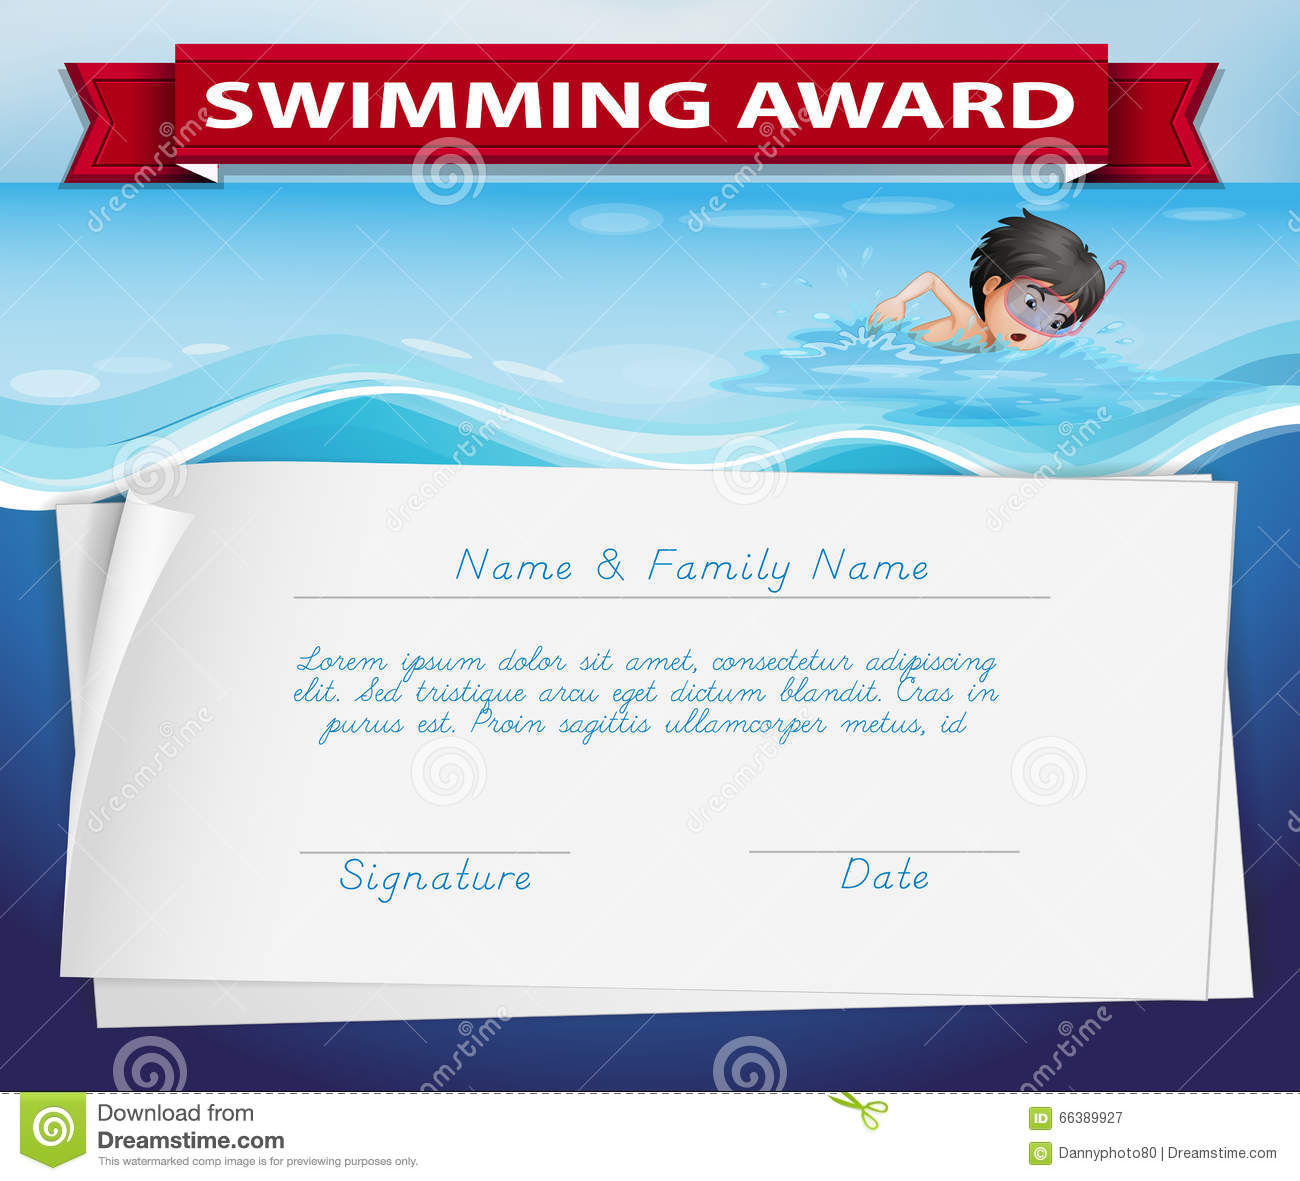 Free swimming certificate templates images templates example swimming certificates template fieldstation template of certificate for swimming award stock vector image alramifo images yelopaper Gallery